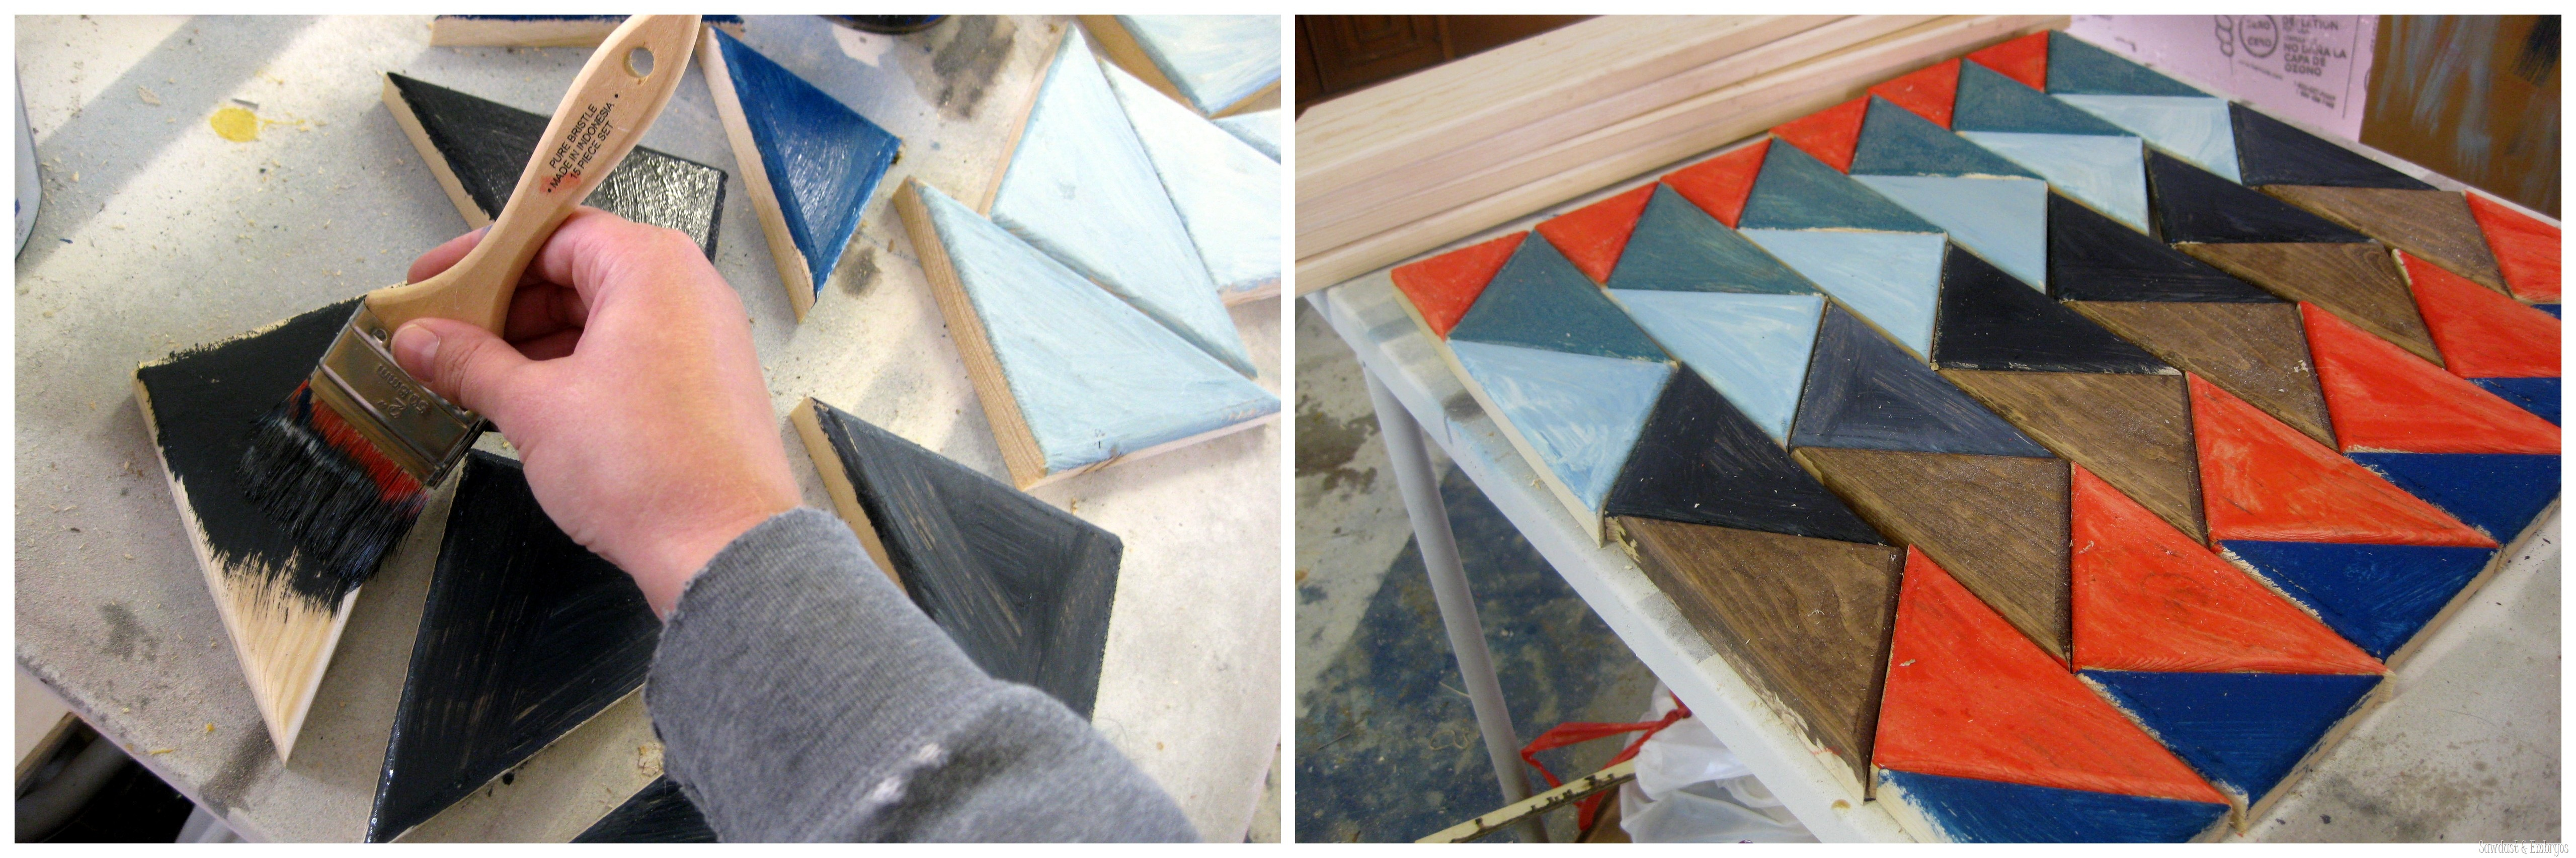 end table update triangle pattern